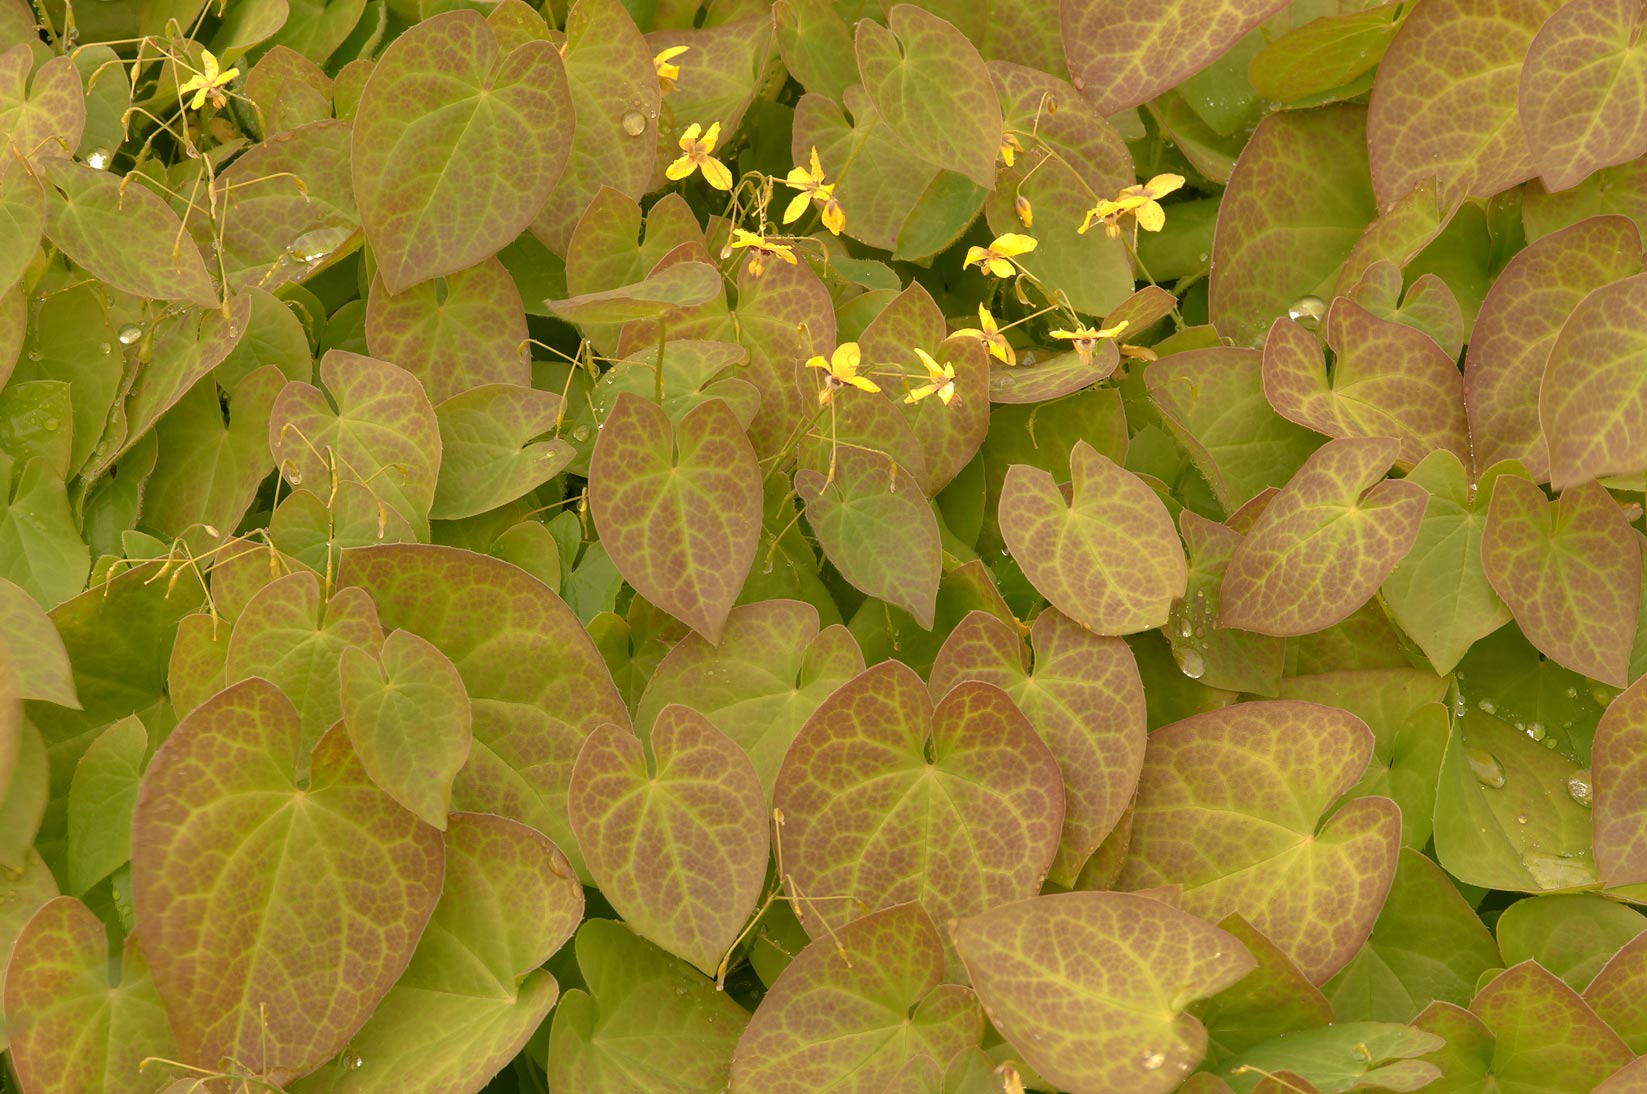 Leaves of barrenwort (Epimedium pinnatum subsp...Institute. St.Petersburg, Russia